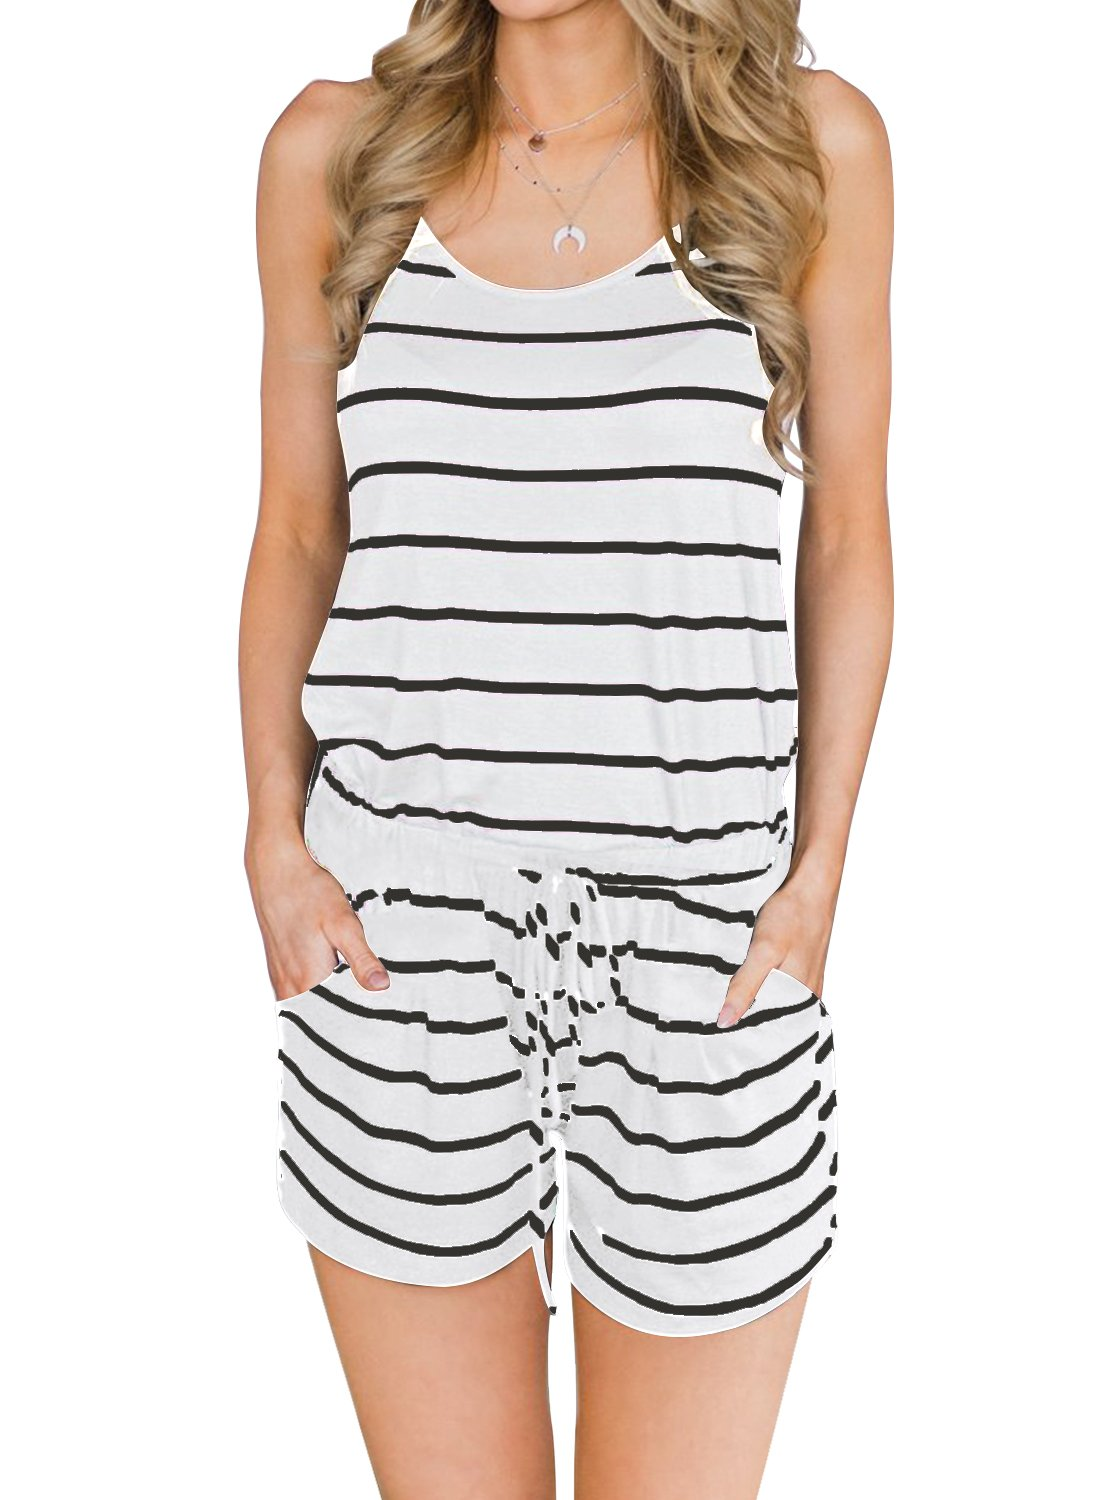 MIHOLL Women's Summer Striped Jumpsuit Casual Loose Sleeveless Jumpsuit Rompers (Small, A-White Black)